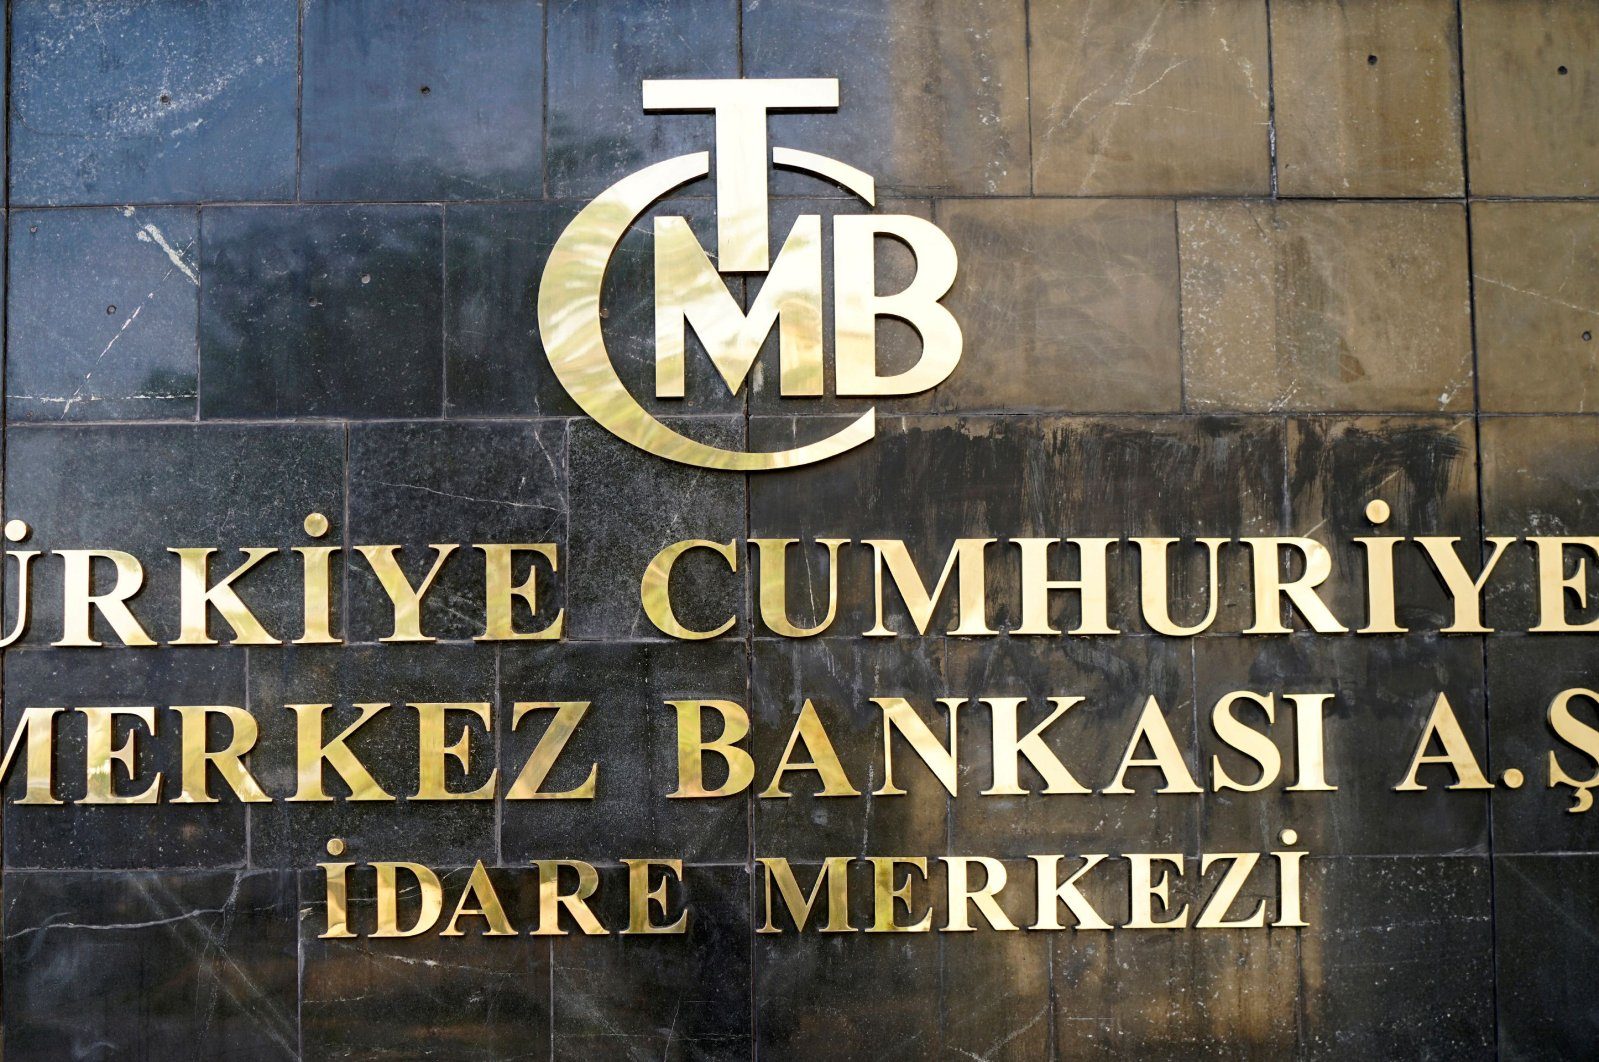 A logo of the Central Bank of the Republic of Turkey is pictured at the entrance of the bank's headquarters in Ankara, Turkey, April 19, 2015. (Reuters Photo)